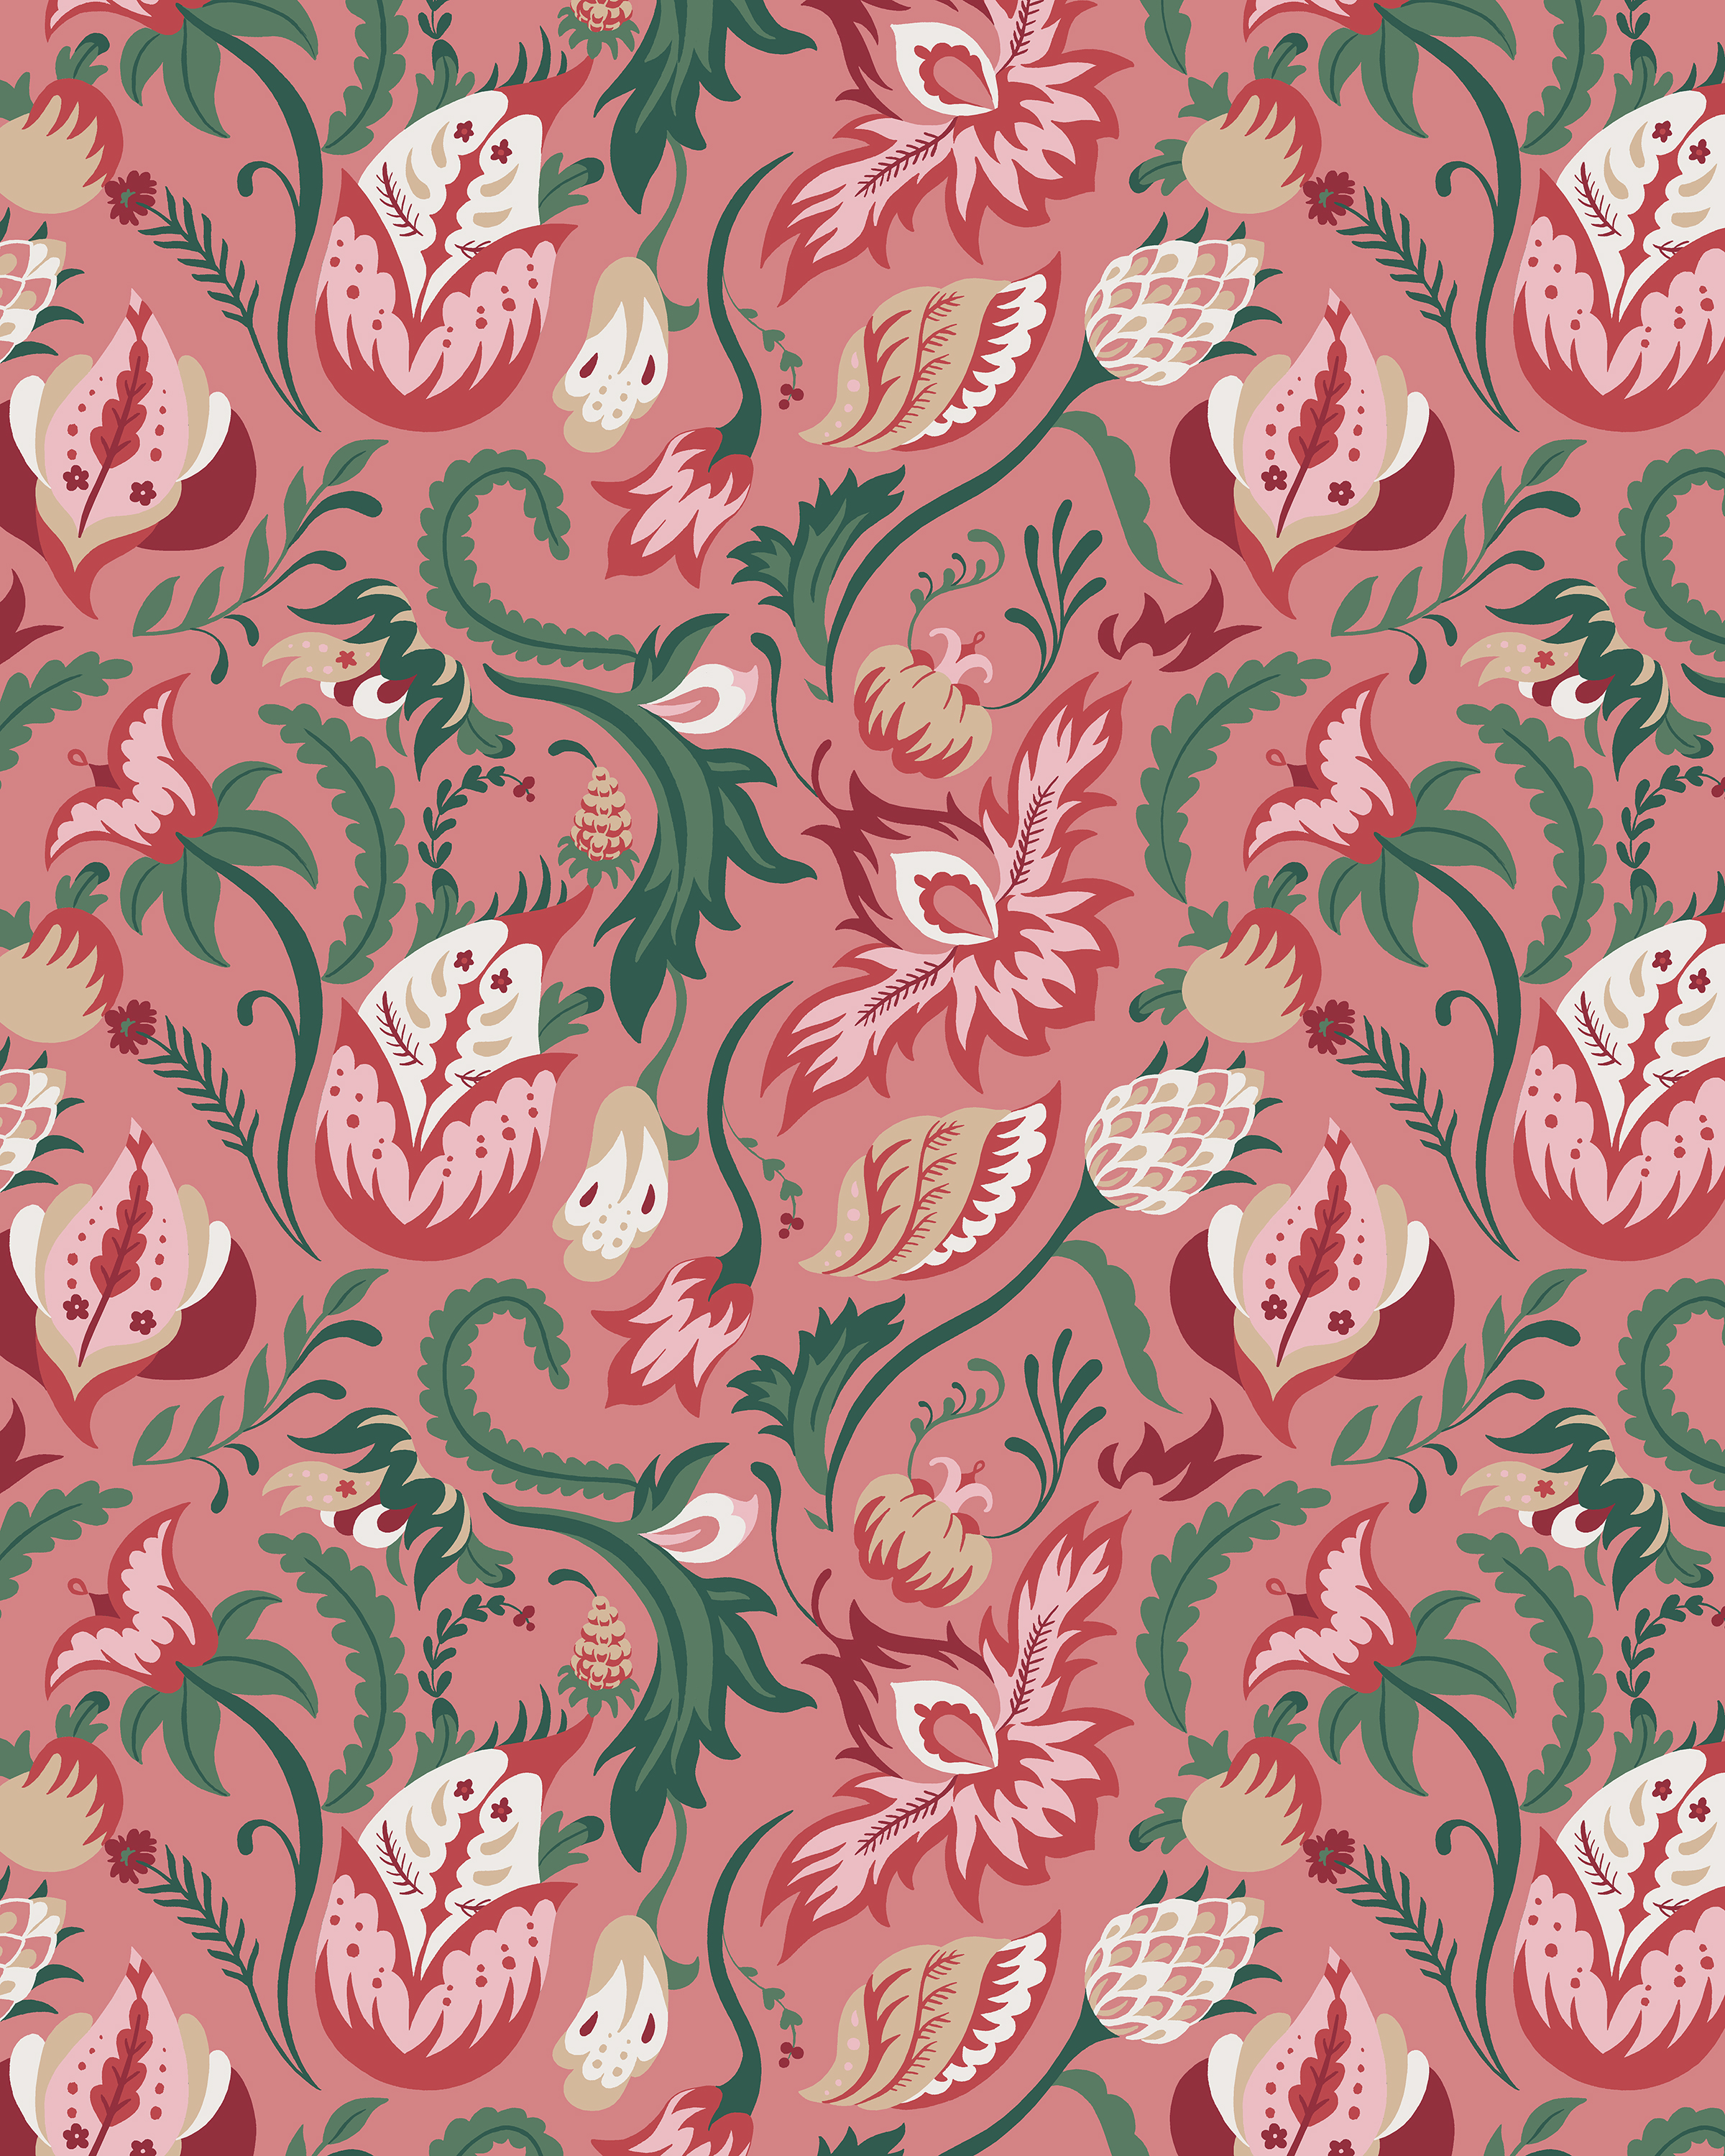 Jacobean Rose Tweaked.jpg